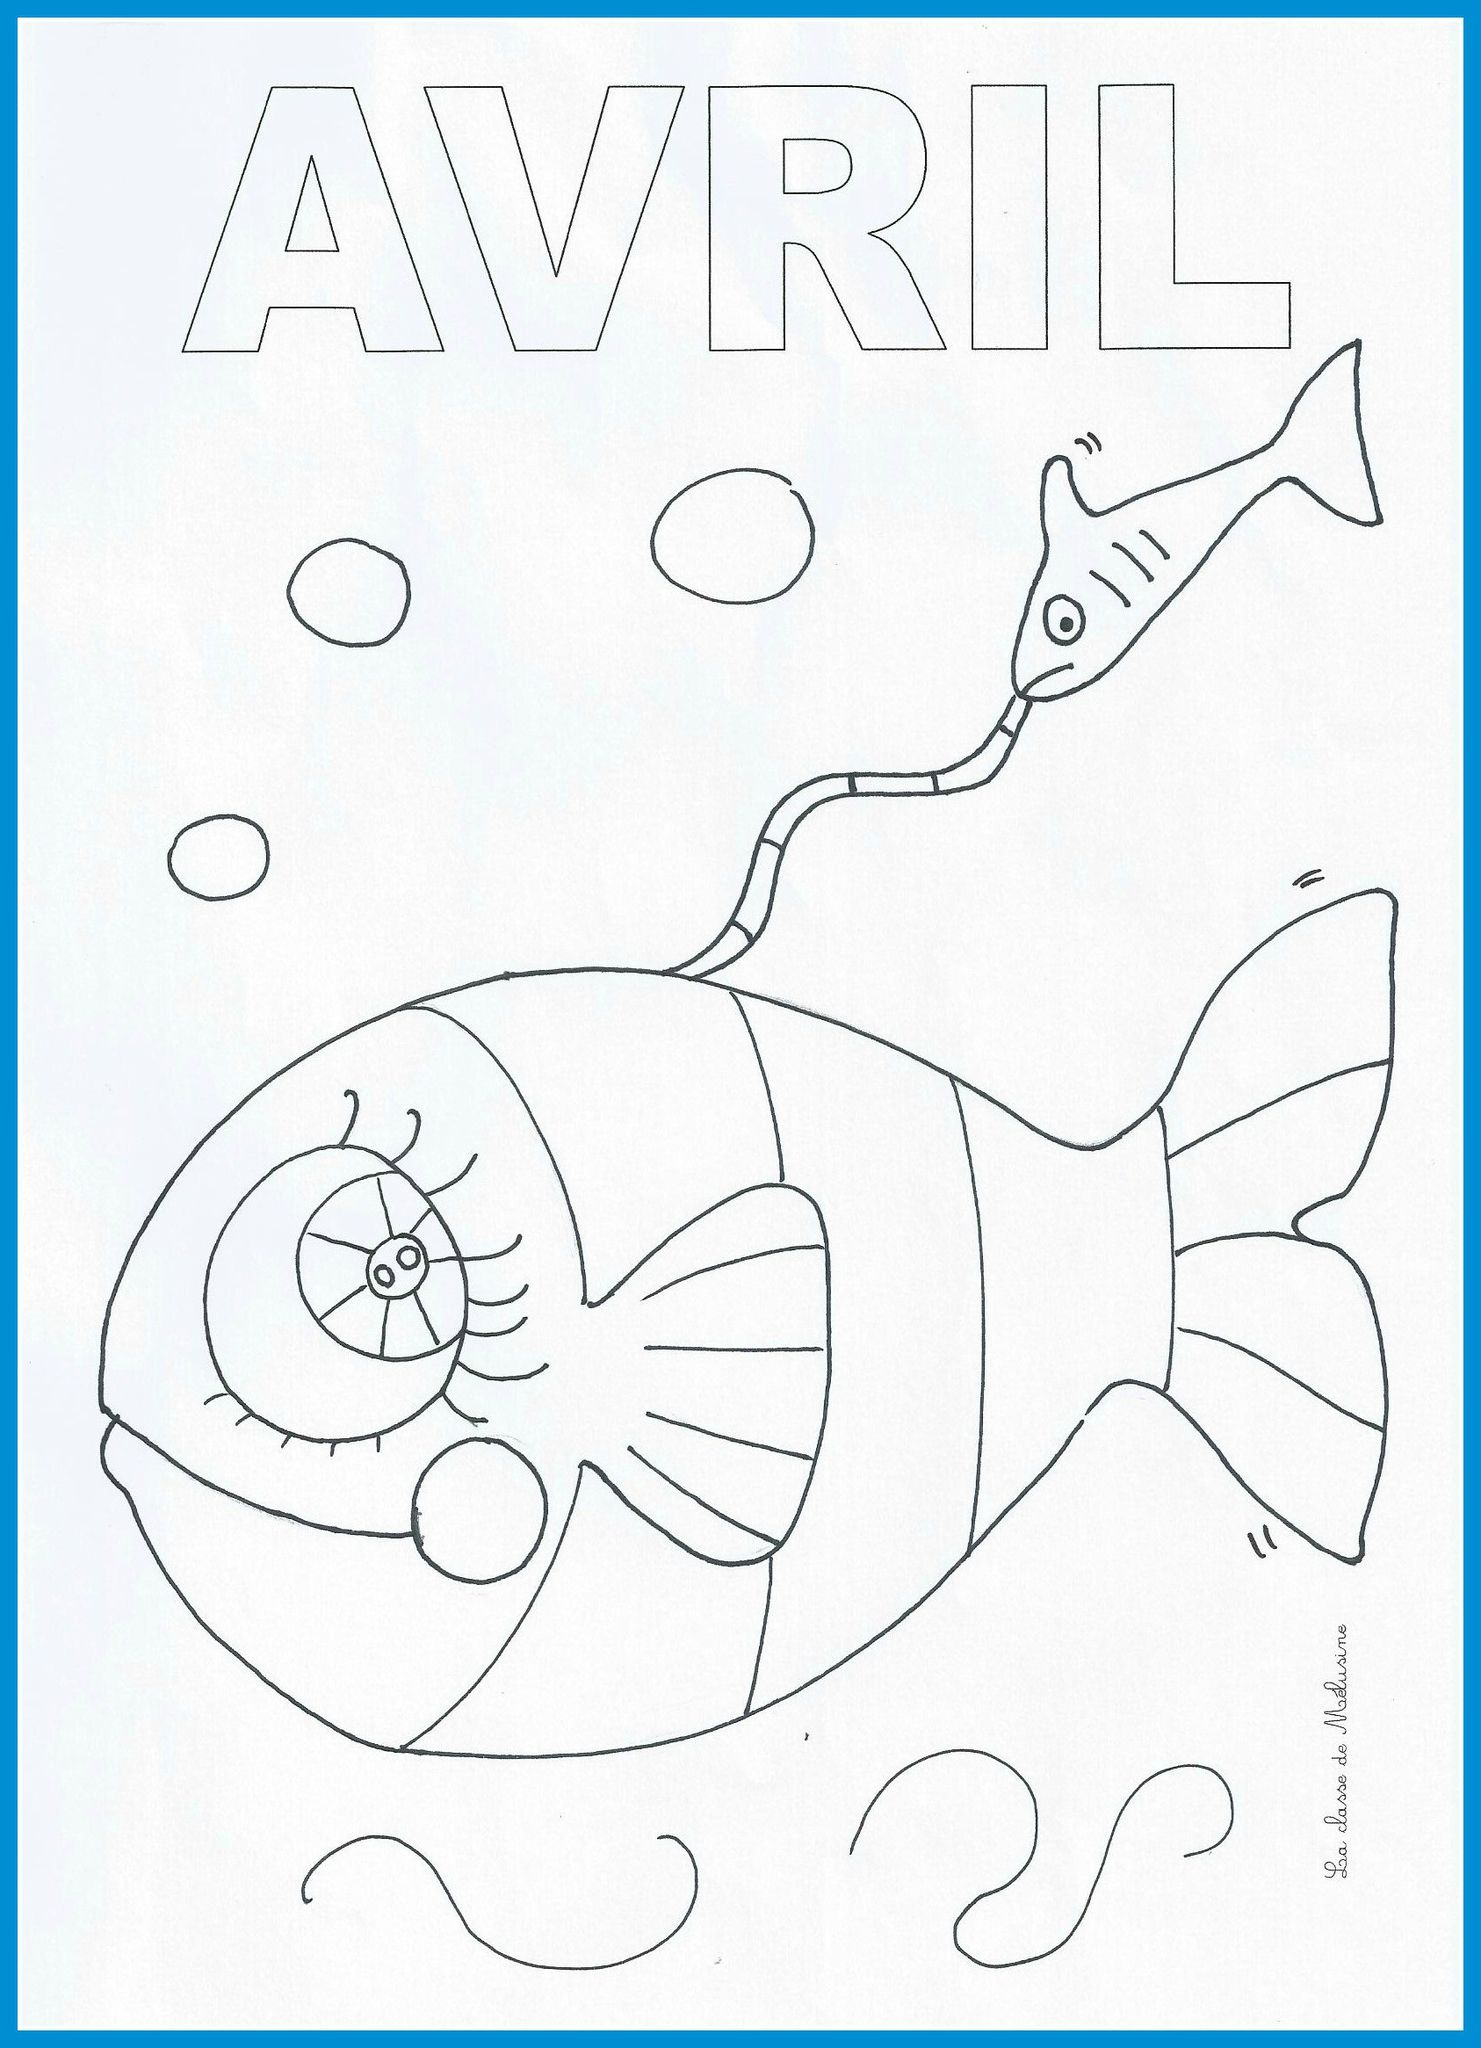 Coloriage mois avril maternelle - Coloriage poisson maternelle ...